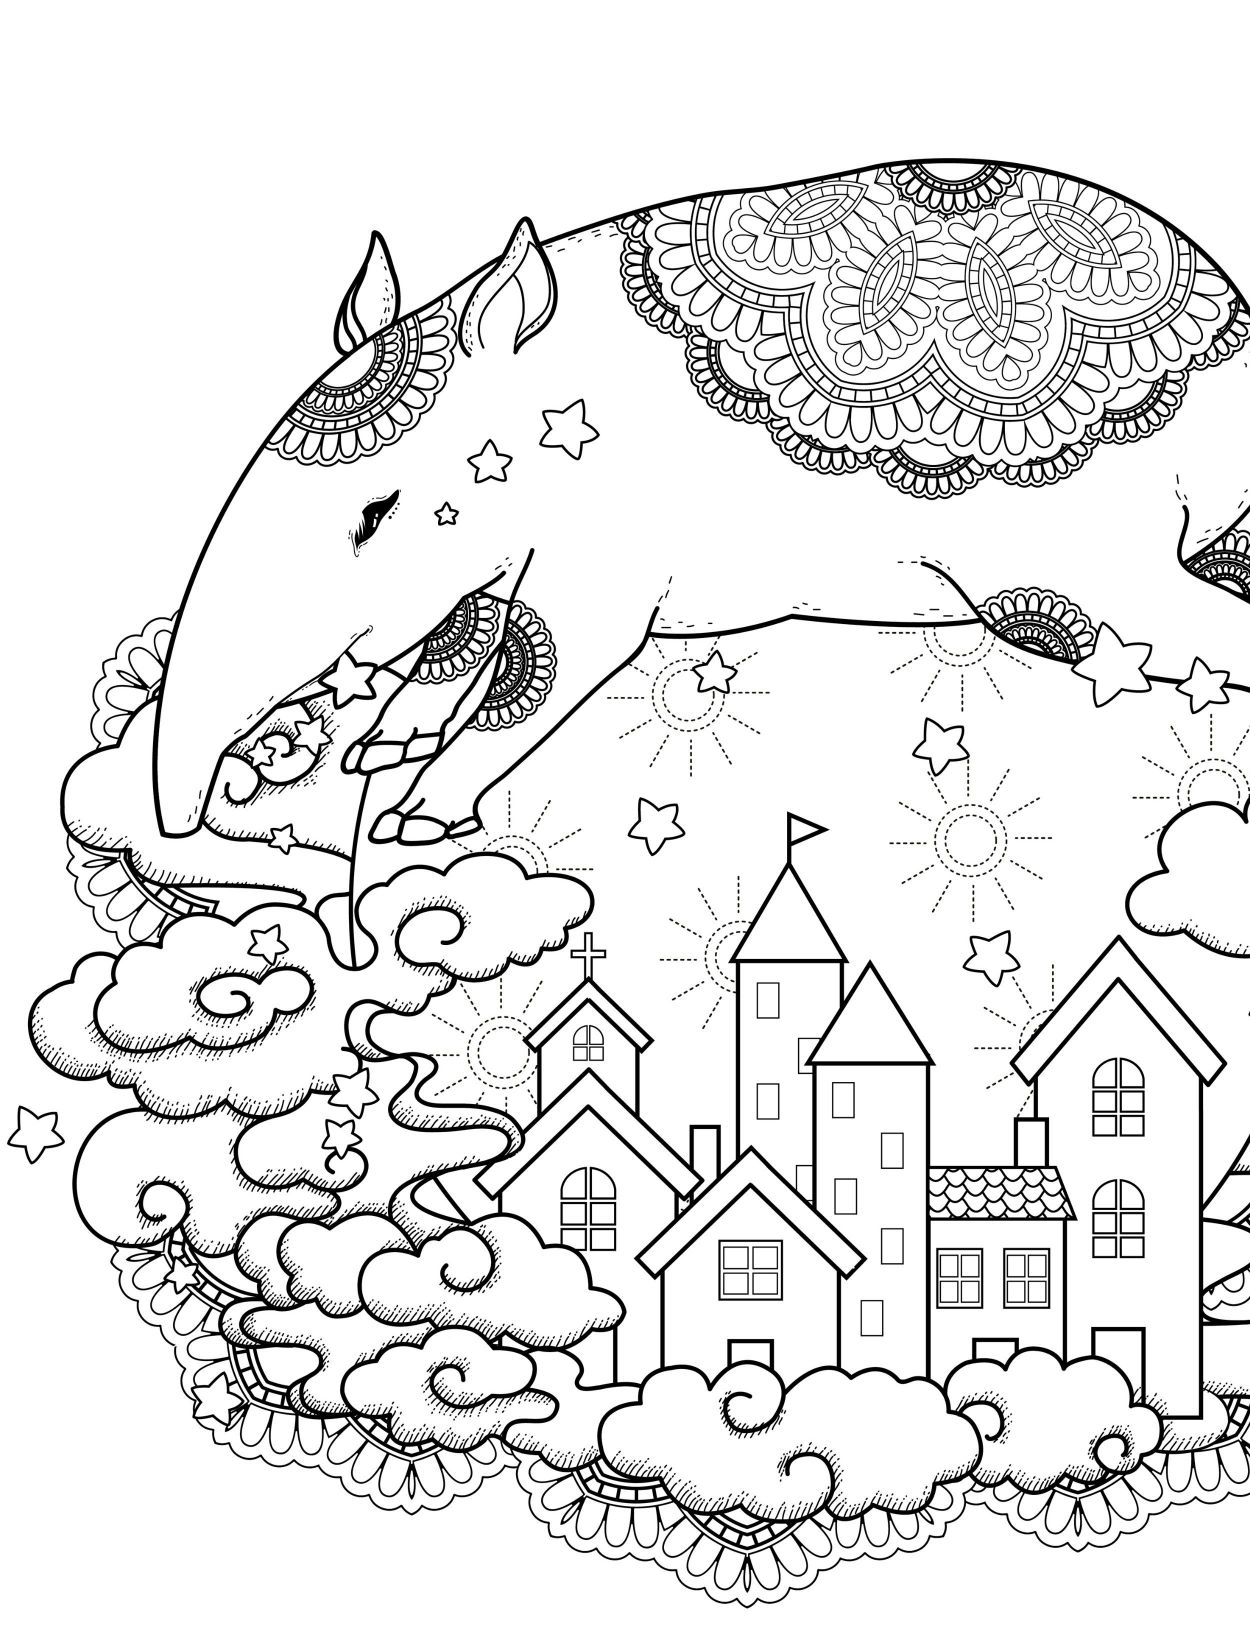 Nerd Coloring Pages At Getdrawings Com Free For Personal Use Nerd